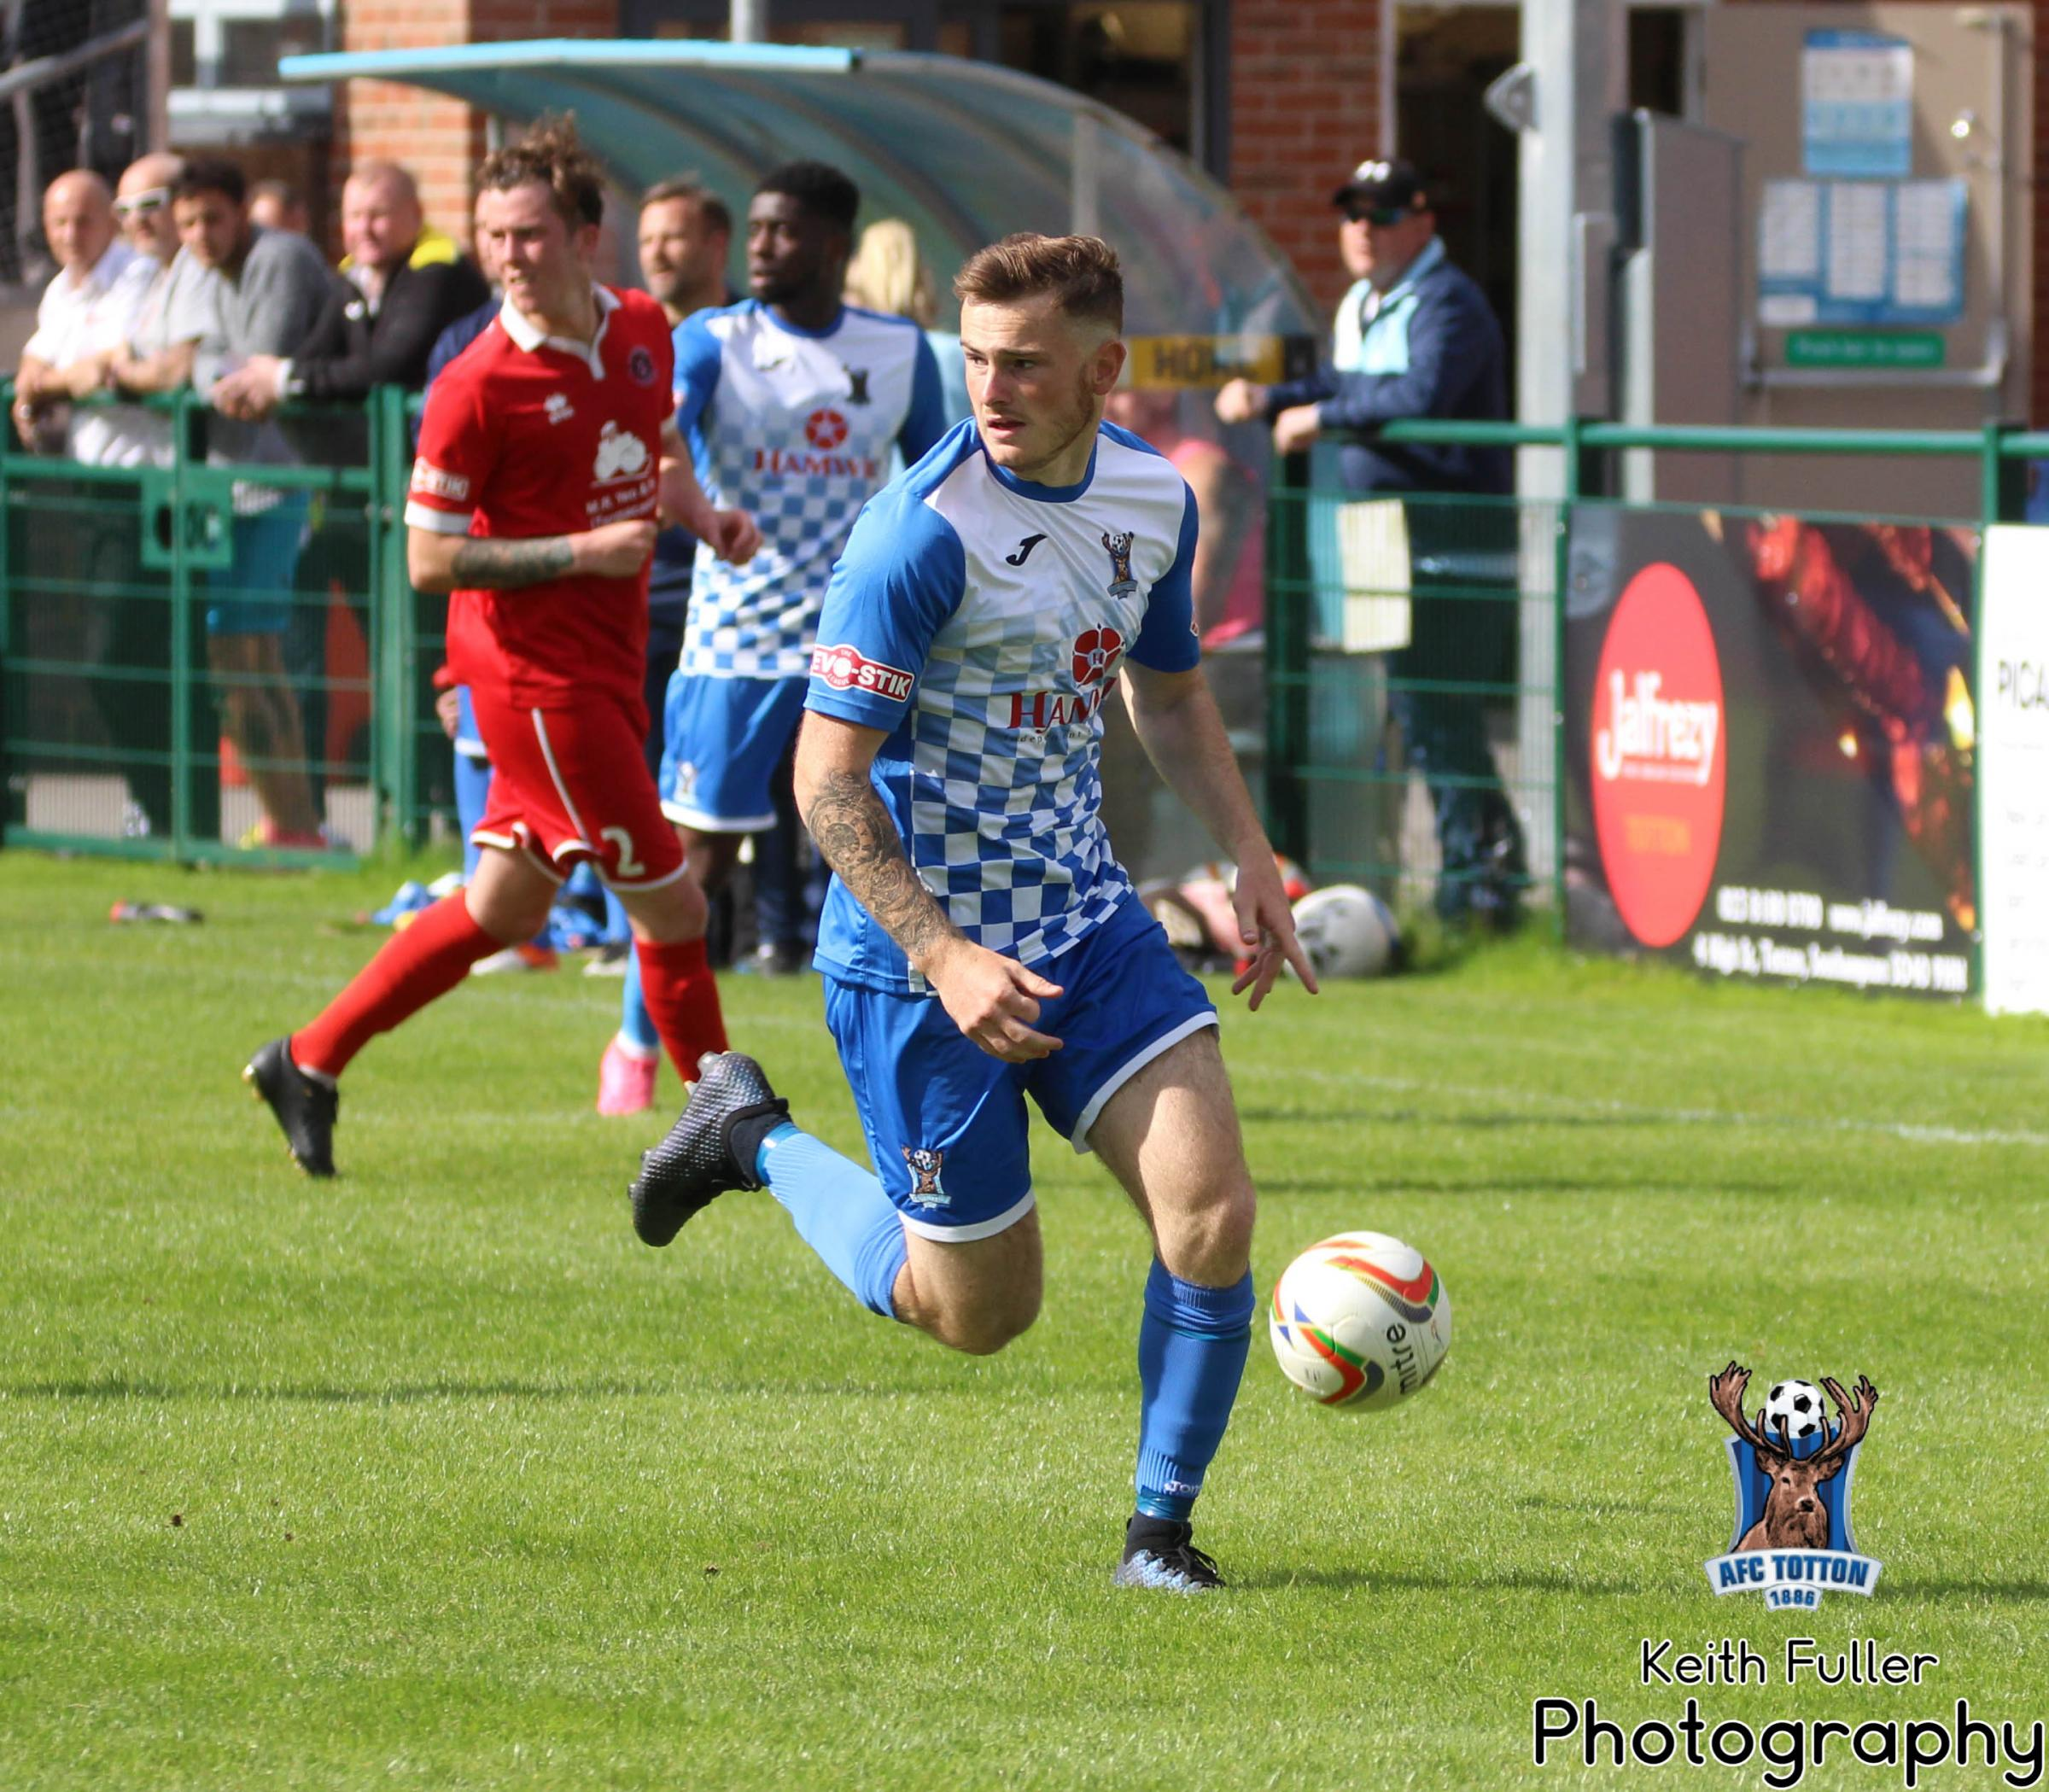 AFC Totton scorer Charlie Gunson (photo: Keith Fuller)